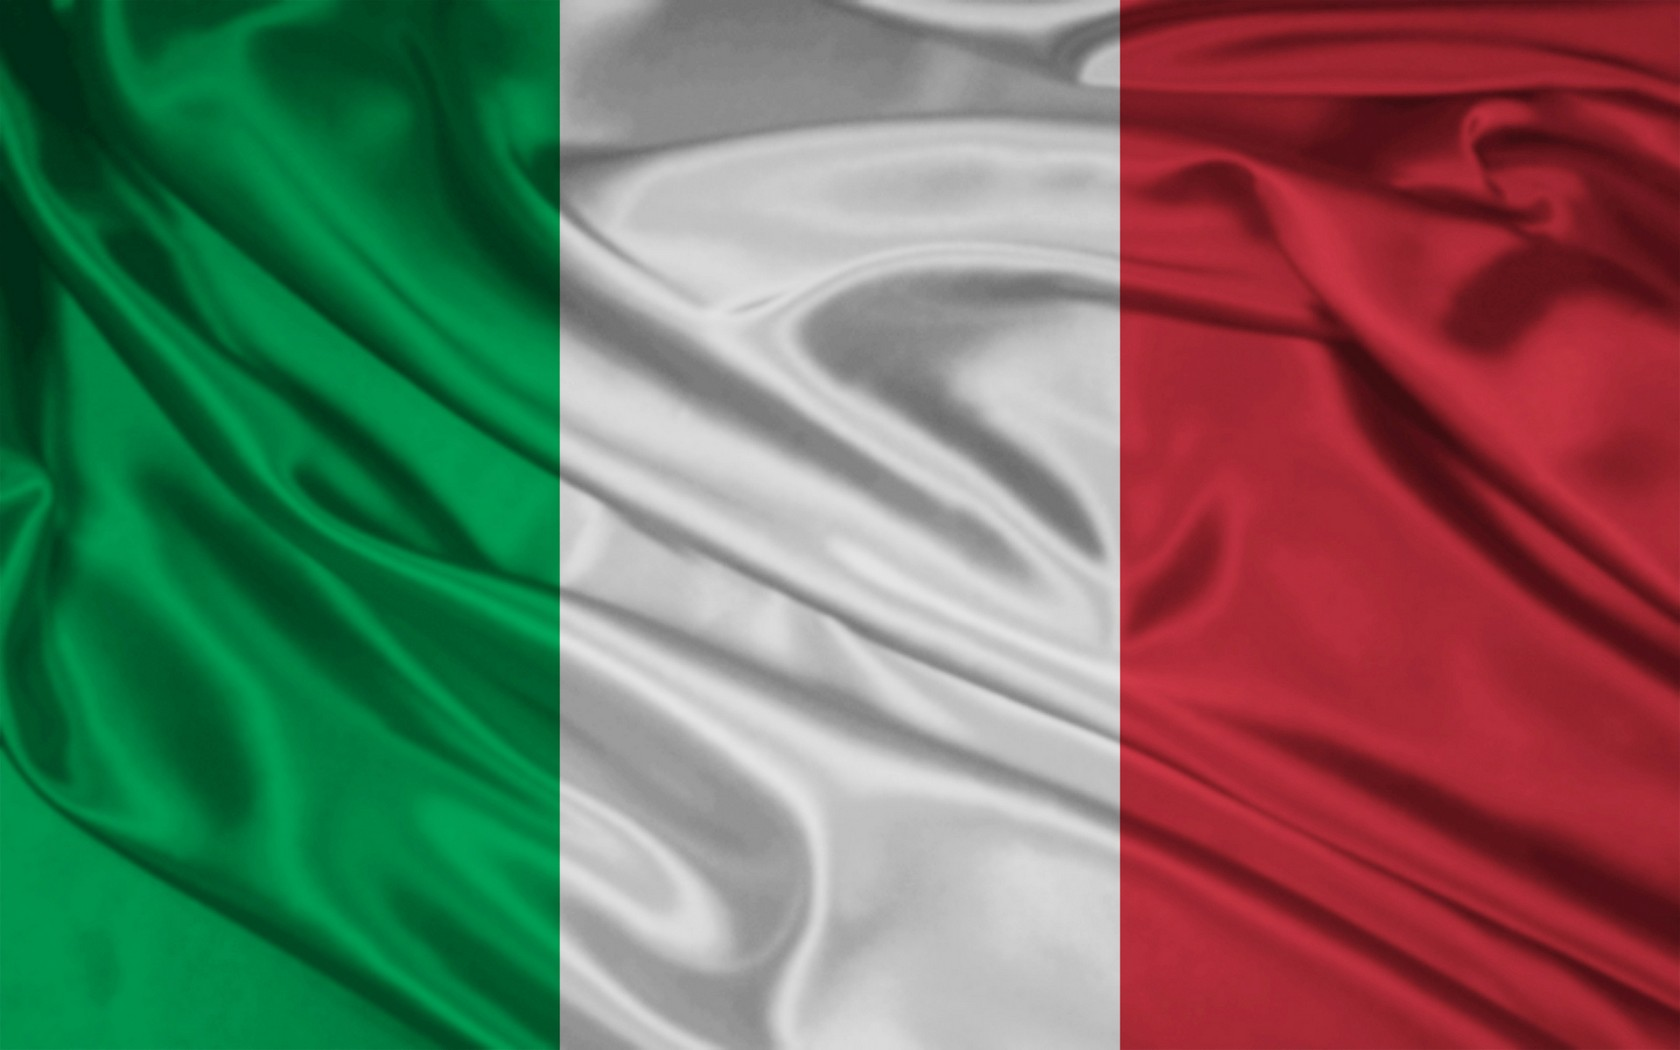 Italian Elections: A Quick Guide